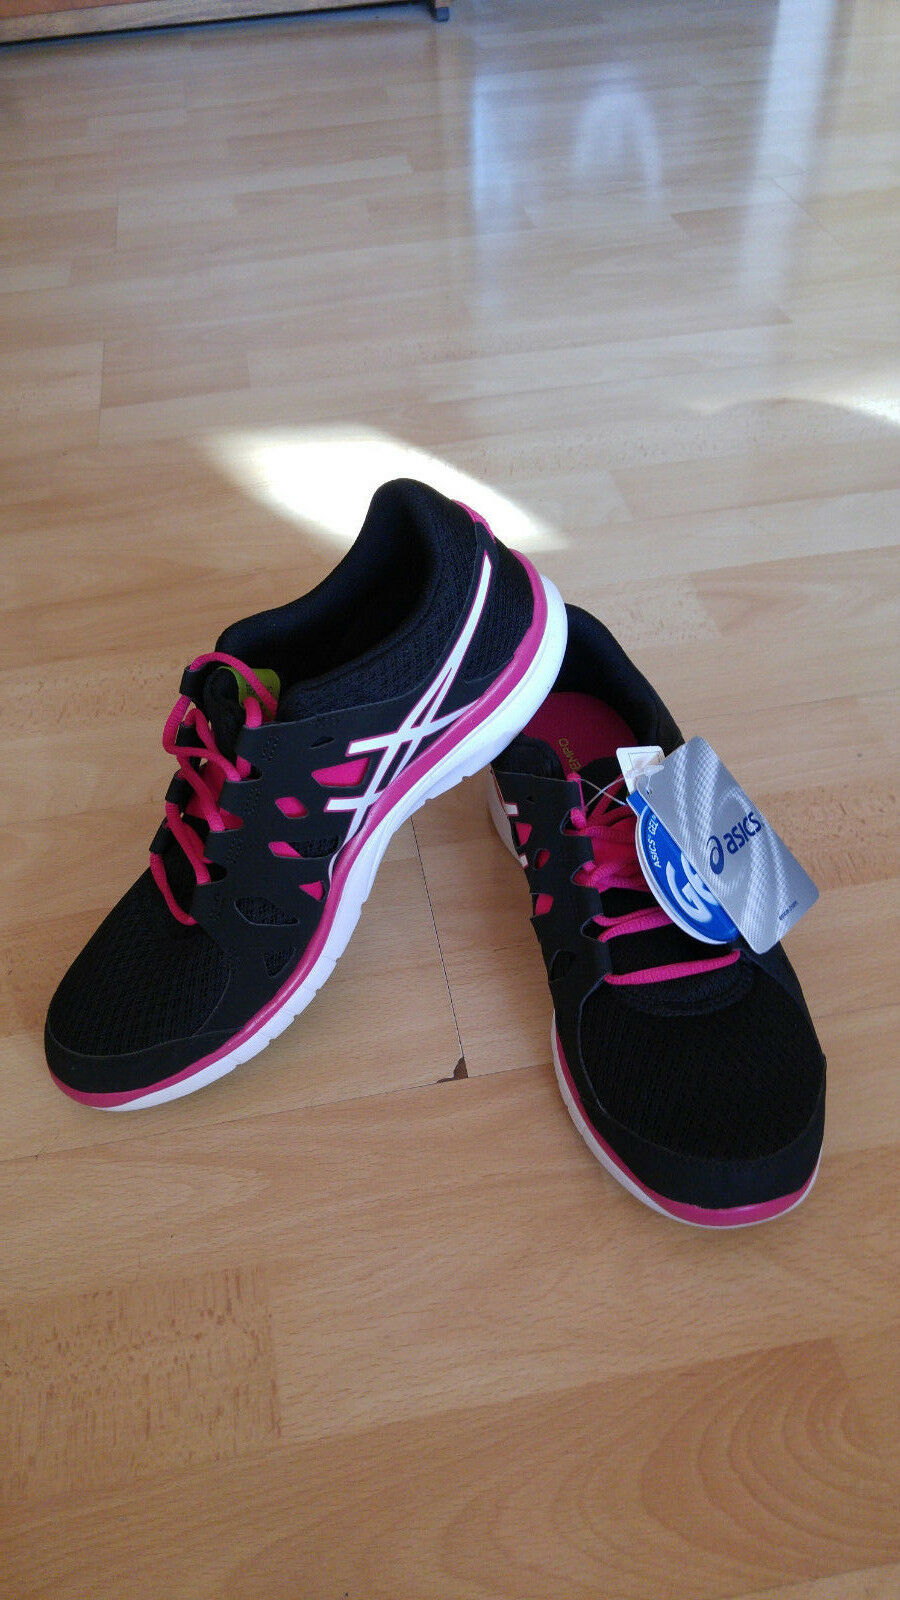 ASICS Women's Gel-Fit Tempo Cross-Trainer shoes